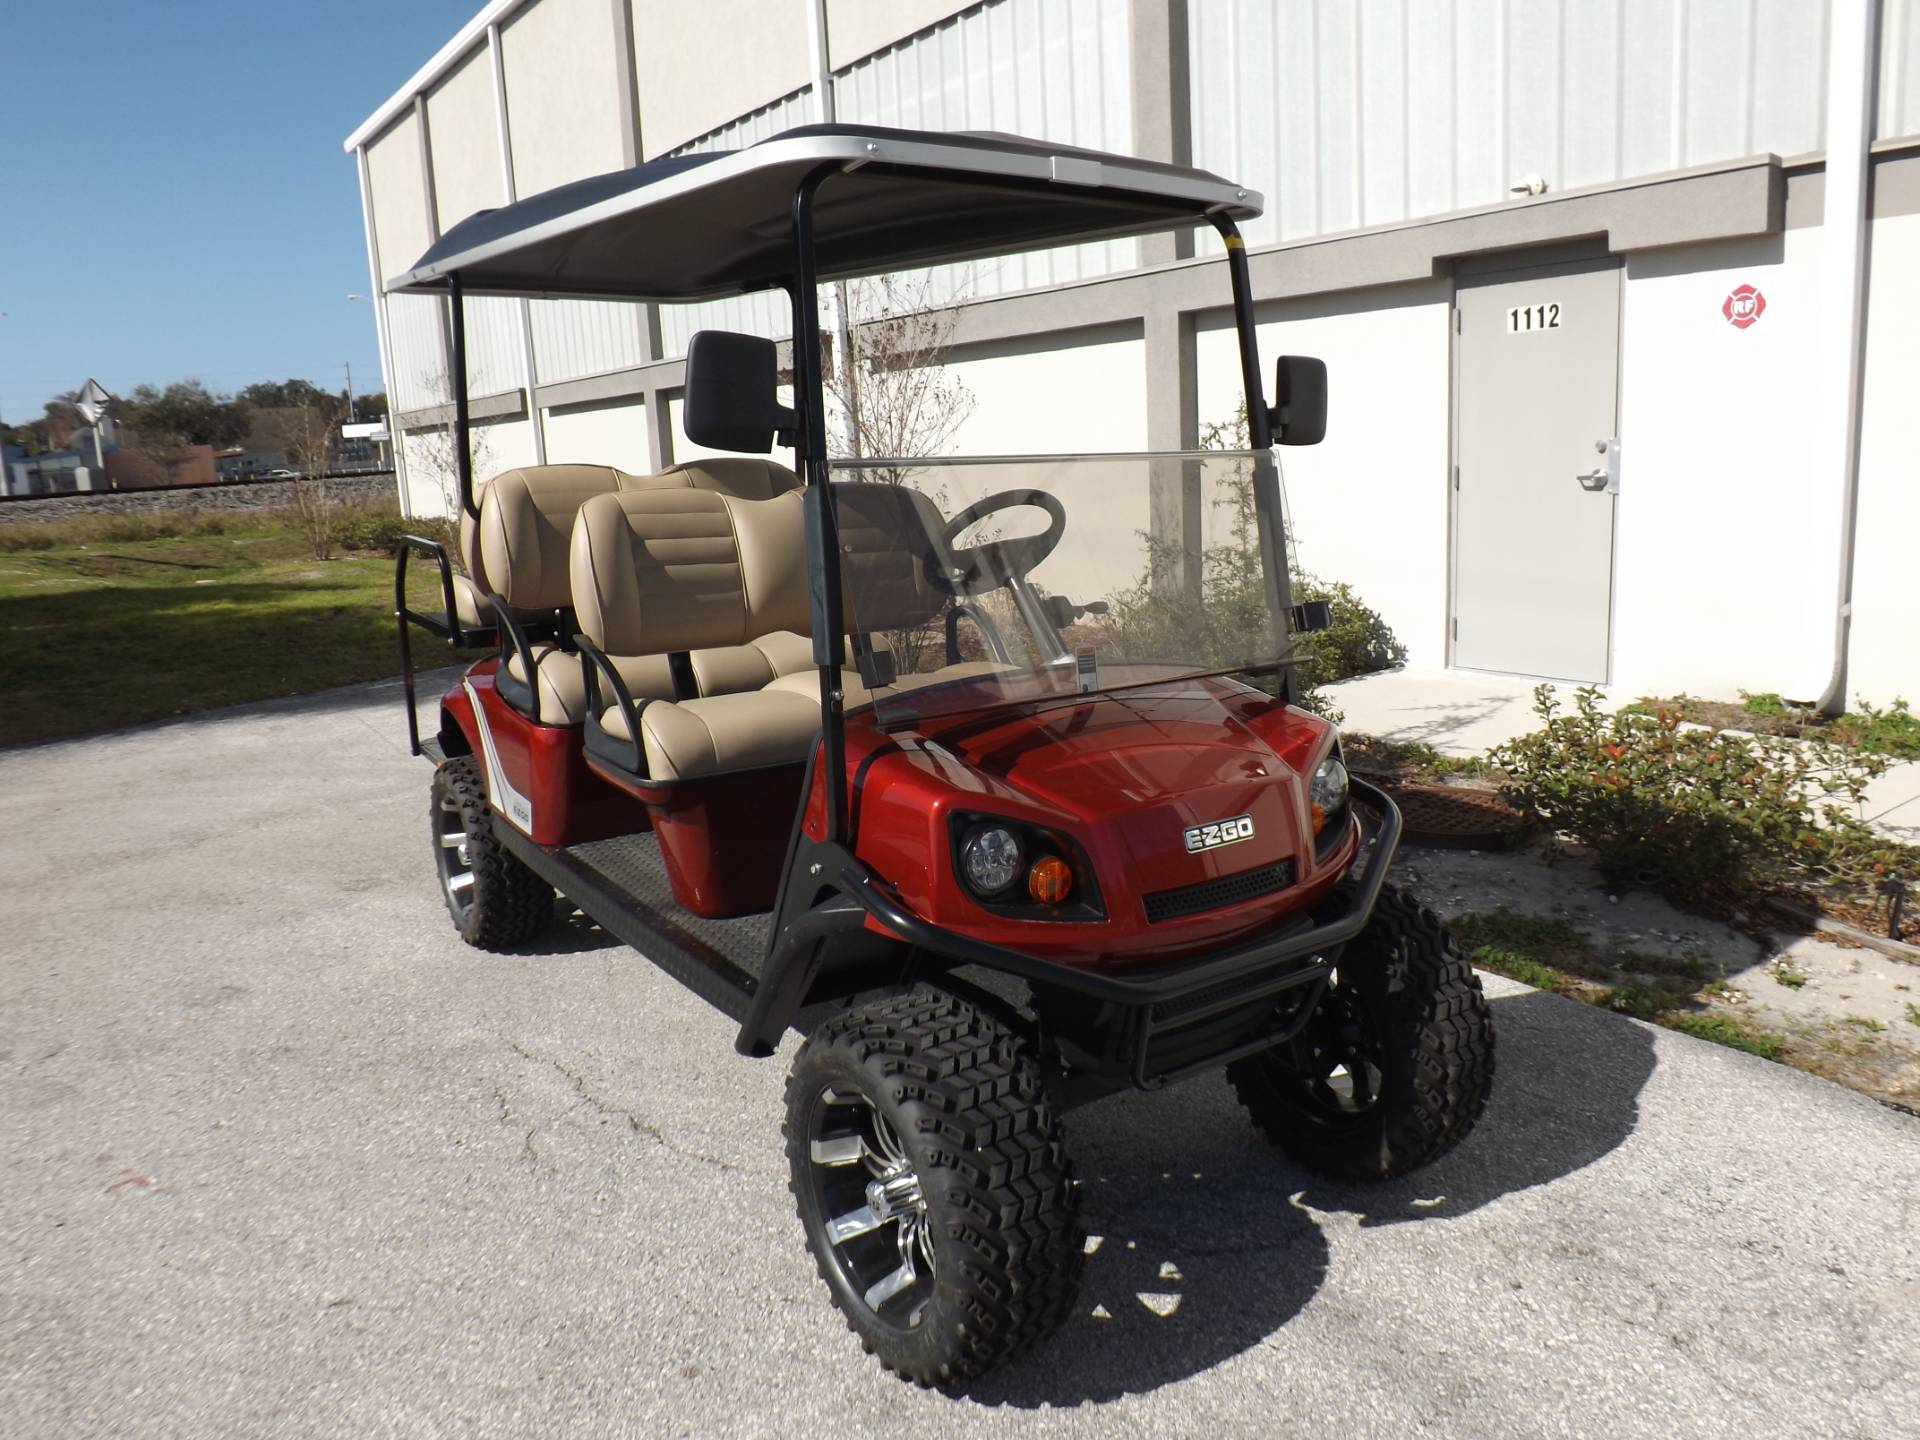 new 2020 e z go express l6 electric golf carts in lakeland fl stock number exp233 2020 e z go express l6 electric in lakeland florida